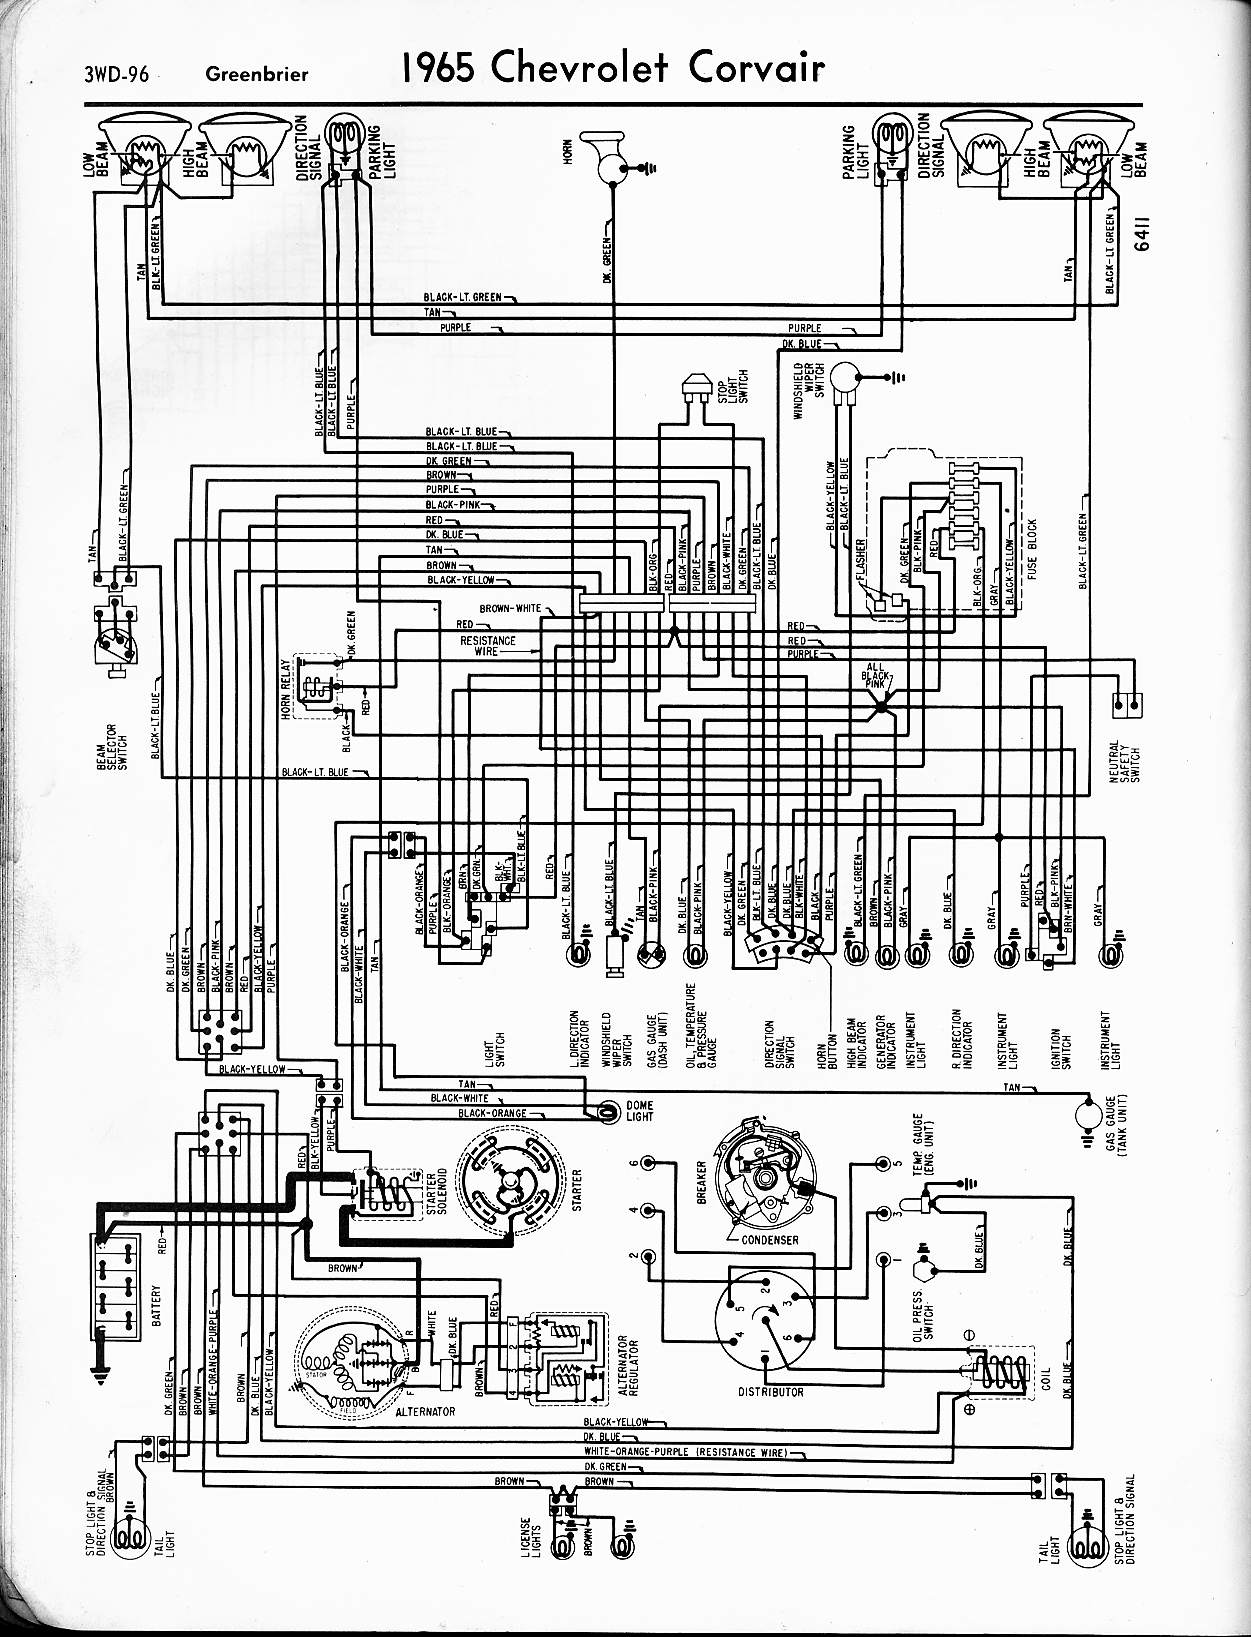 1965 c10 dash wiring diagram